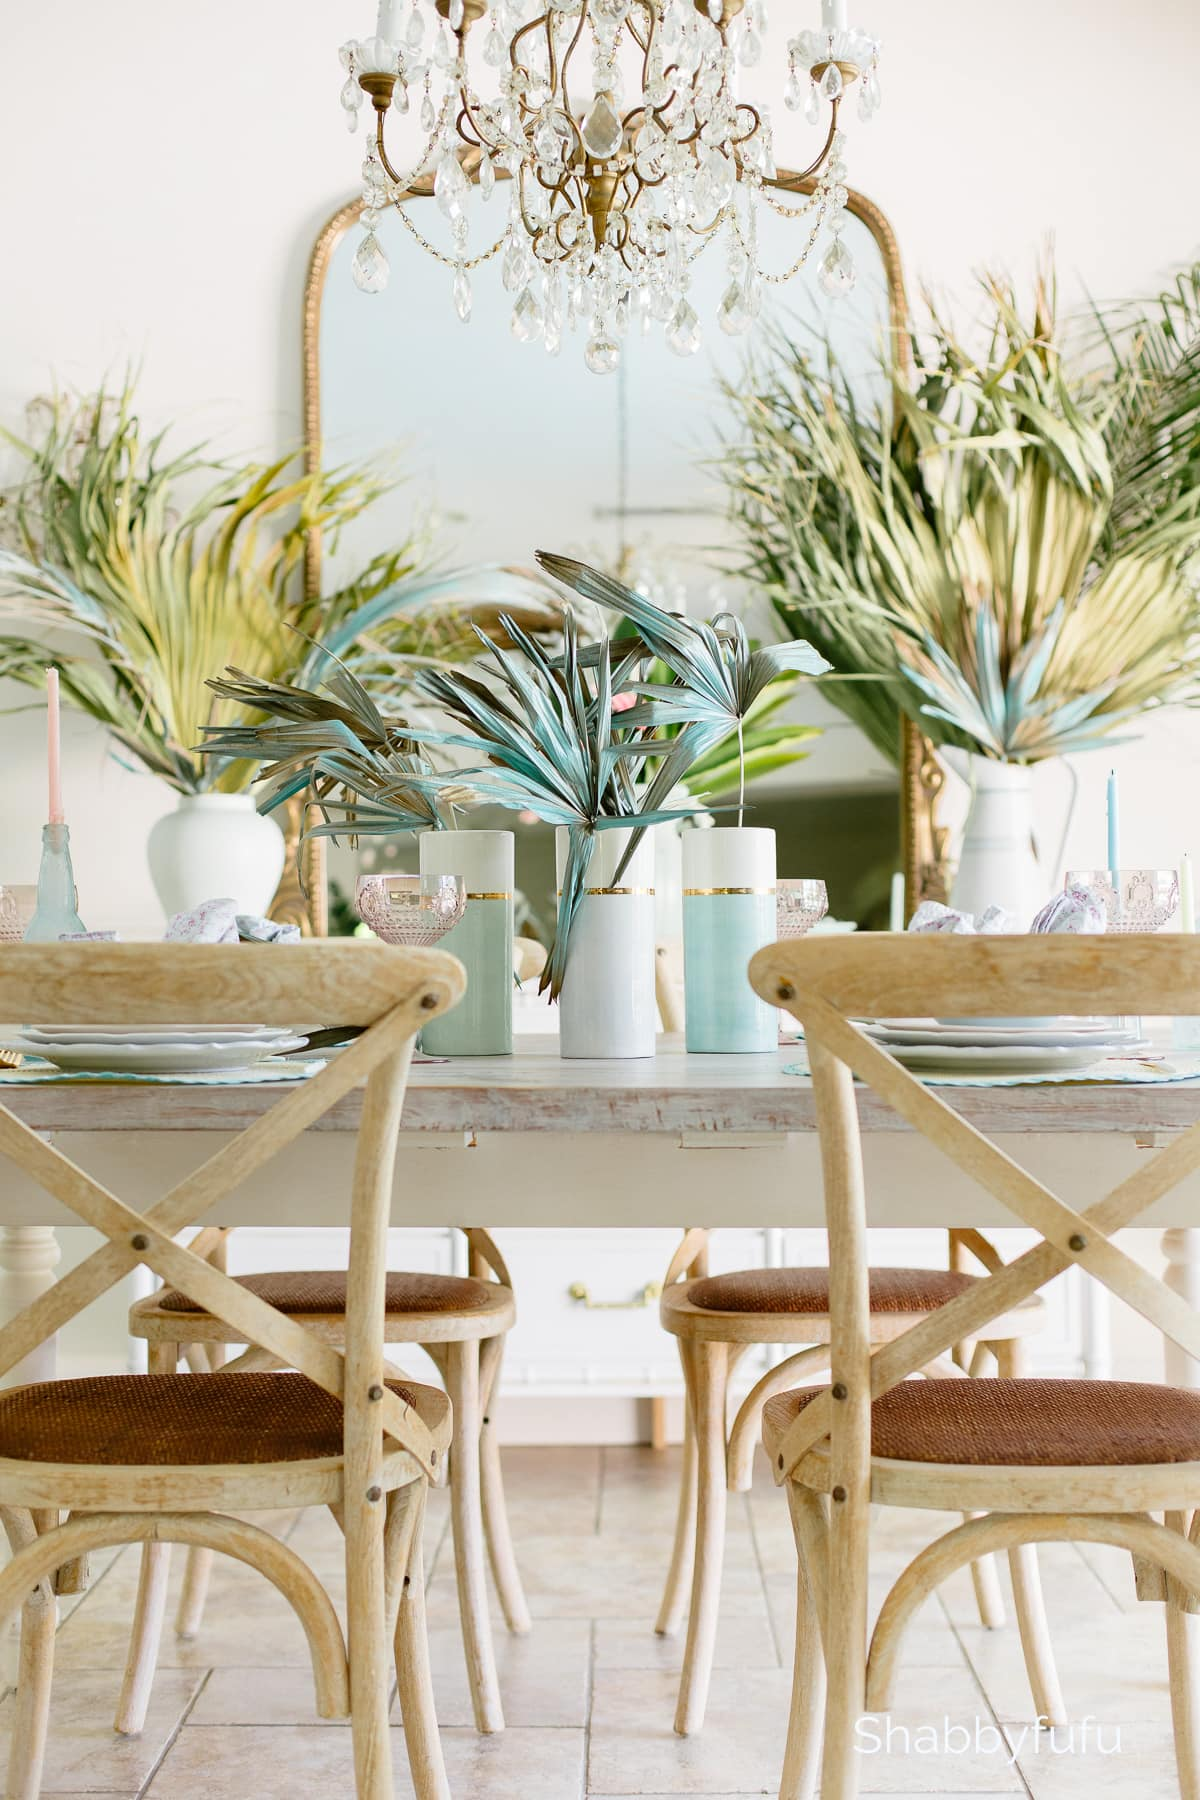 spring break in Miami tablescape with dried palm fronds